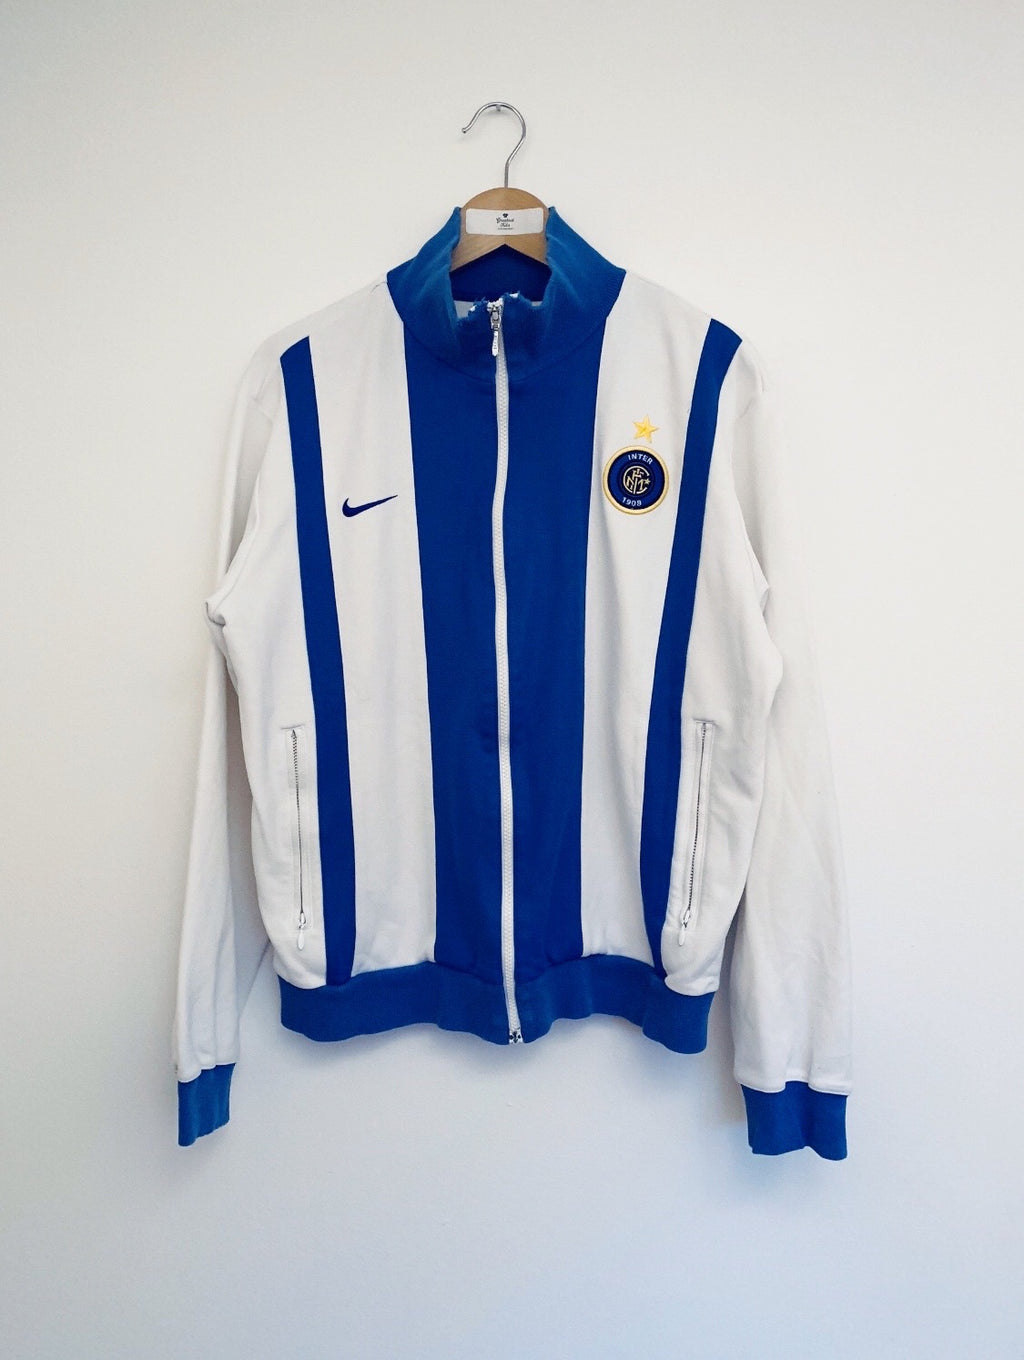 2001/02 Inter Milan Track Jacket (L) 8.5/10